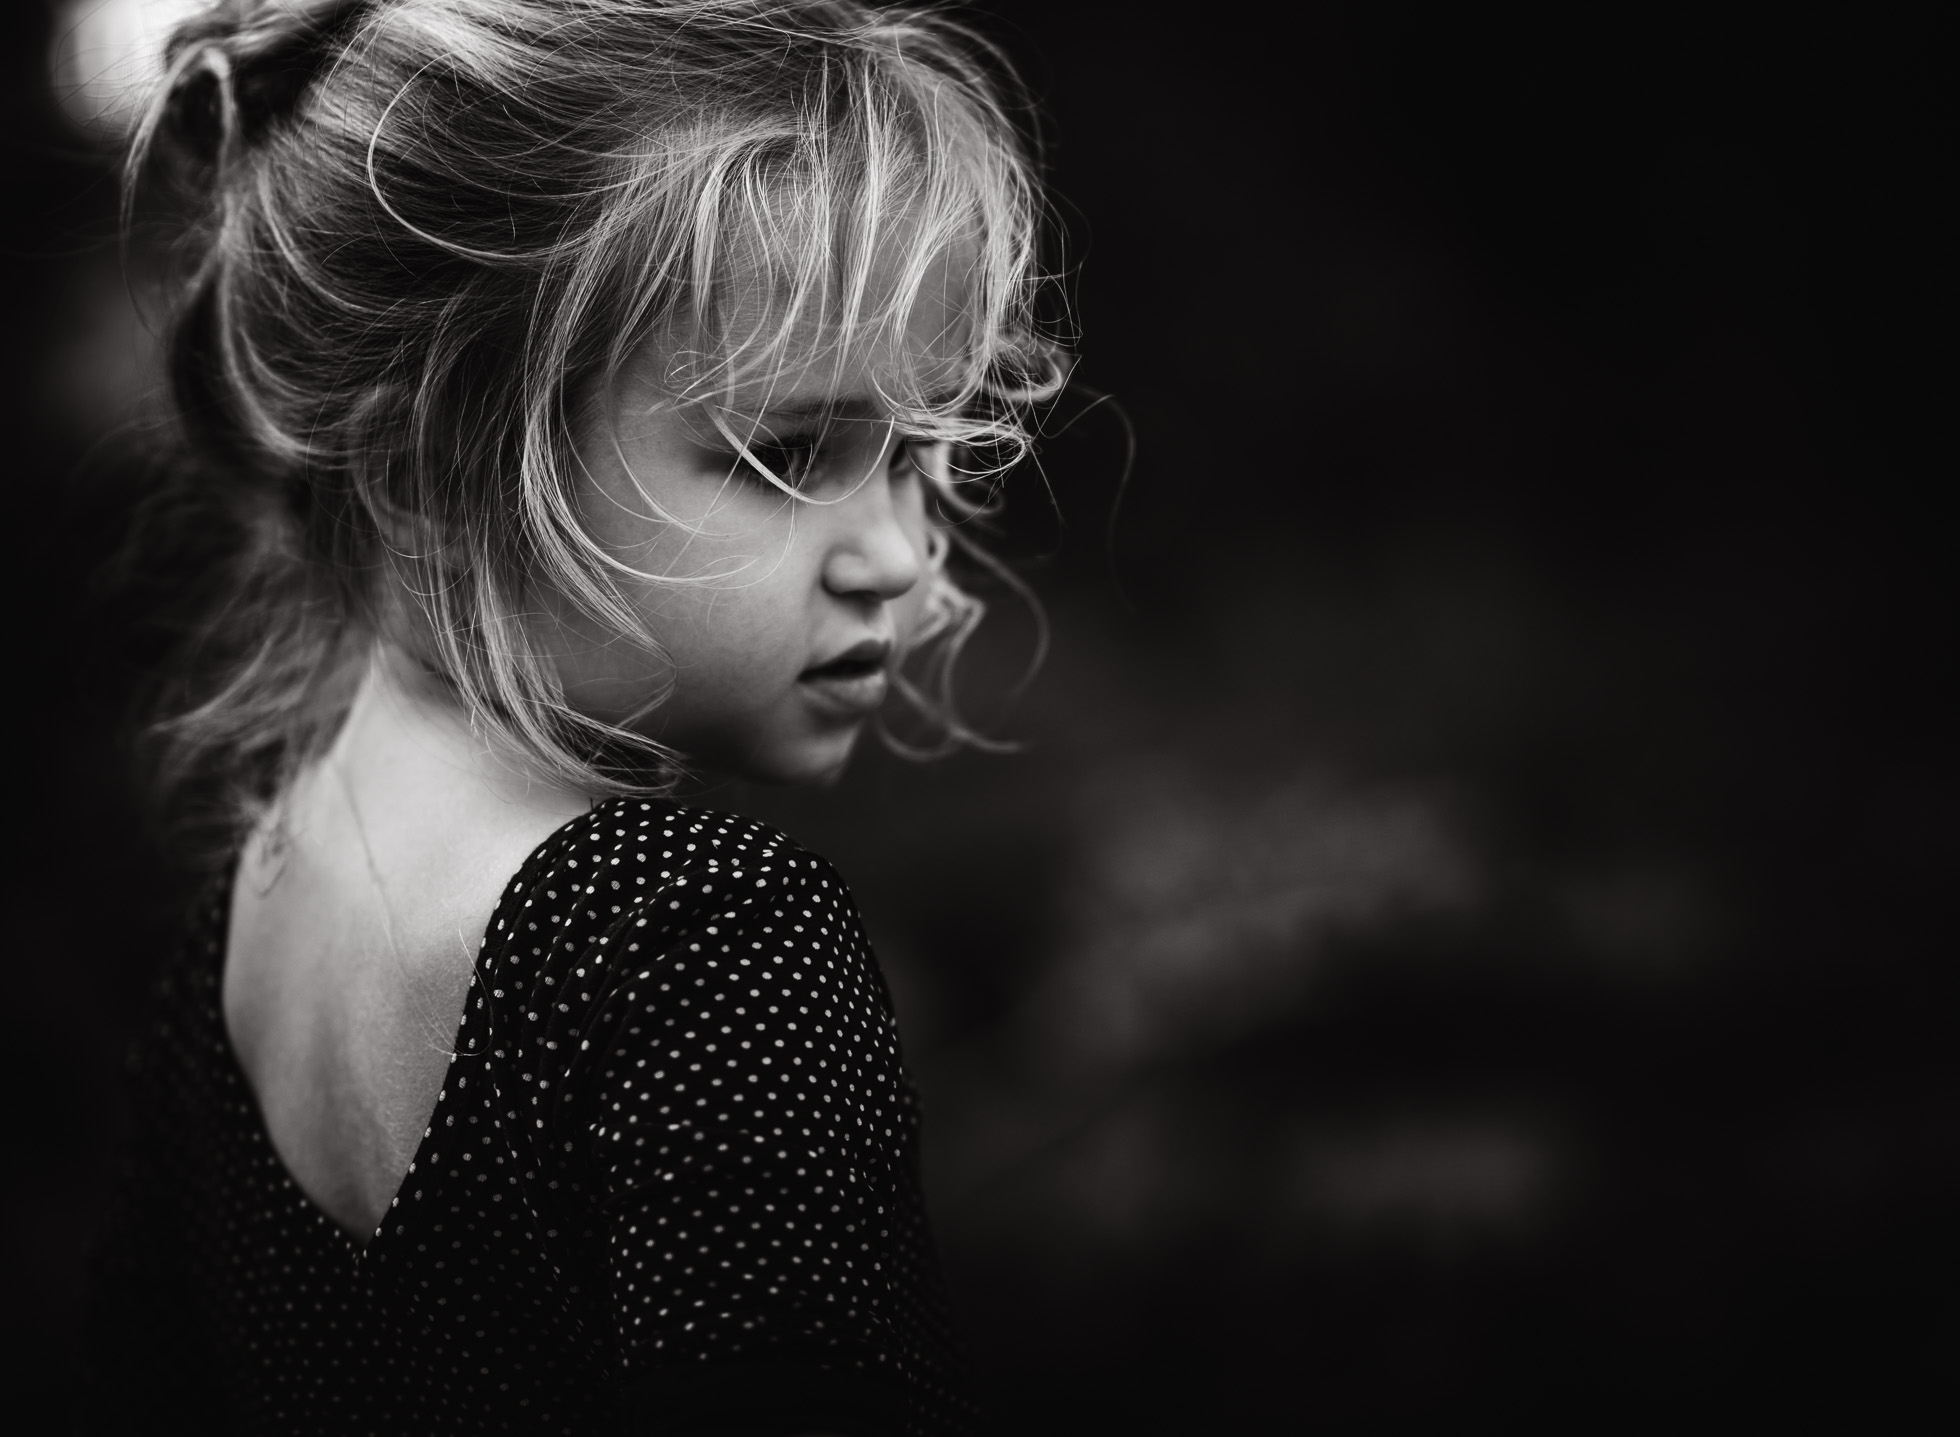 The girl with the messy hair child portrait black and white monochrome edmond ok photographer oklahoma